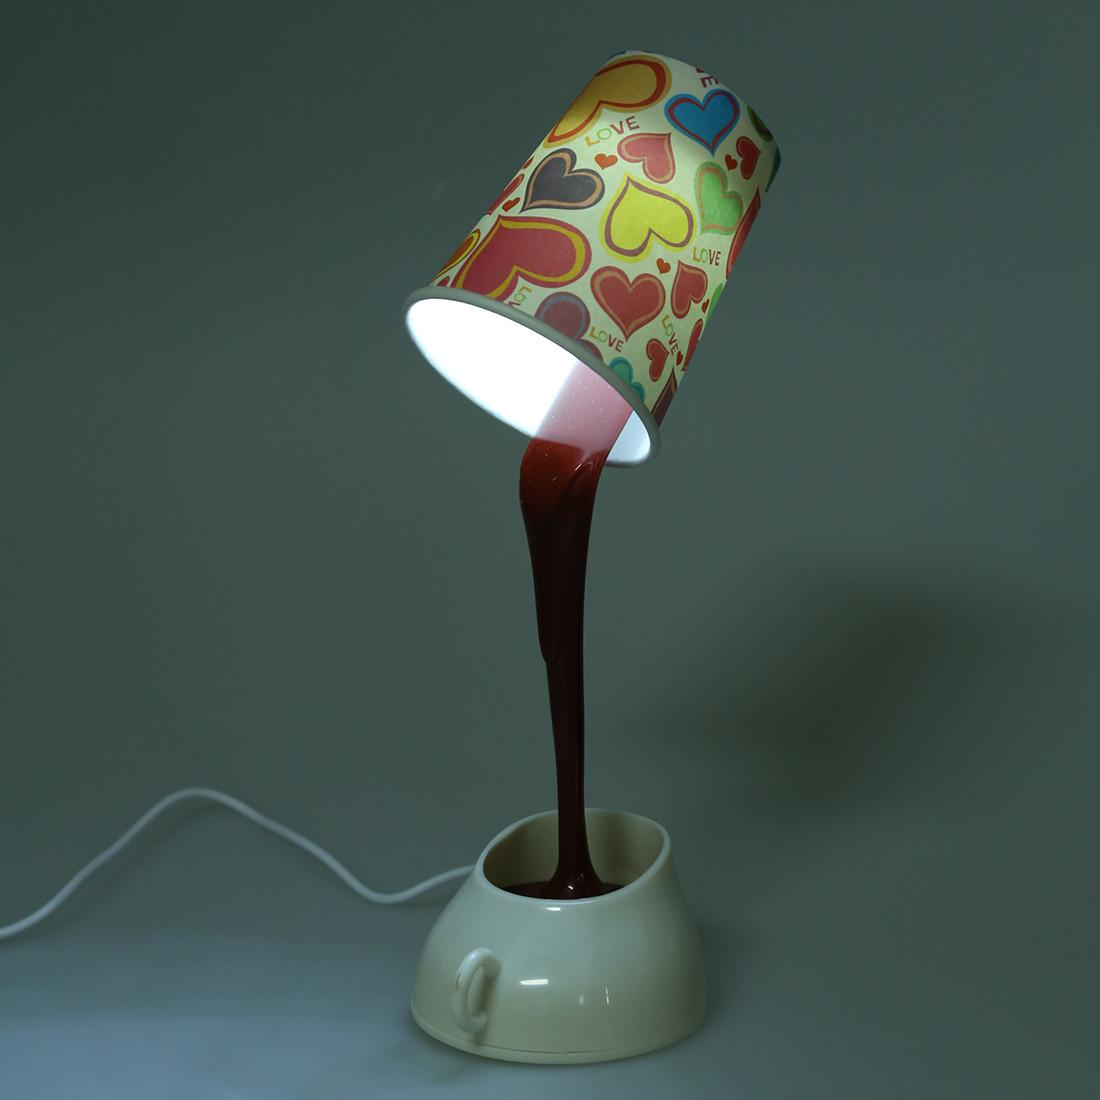 Diy Led Coffee Cup Lamp Home Decoration W7m4 L7h6